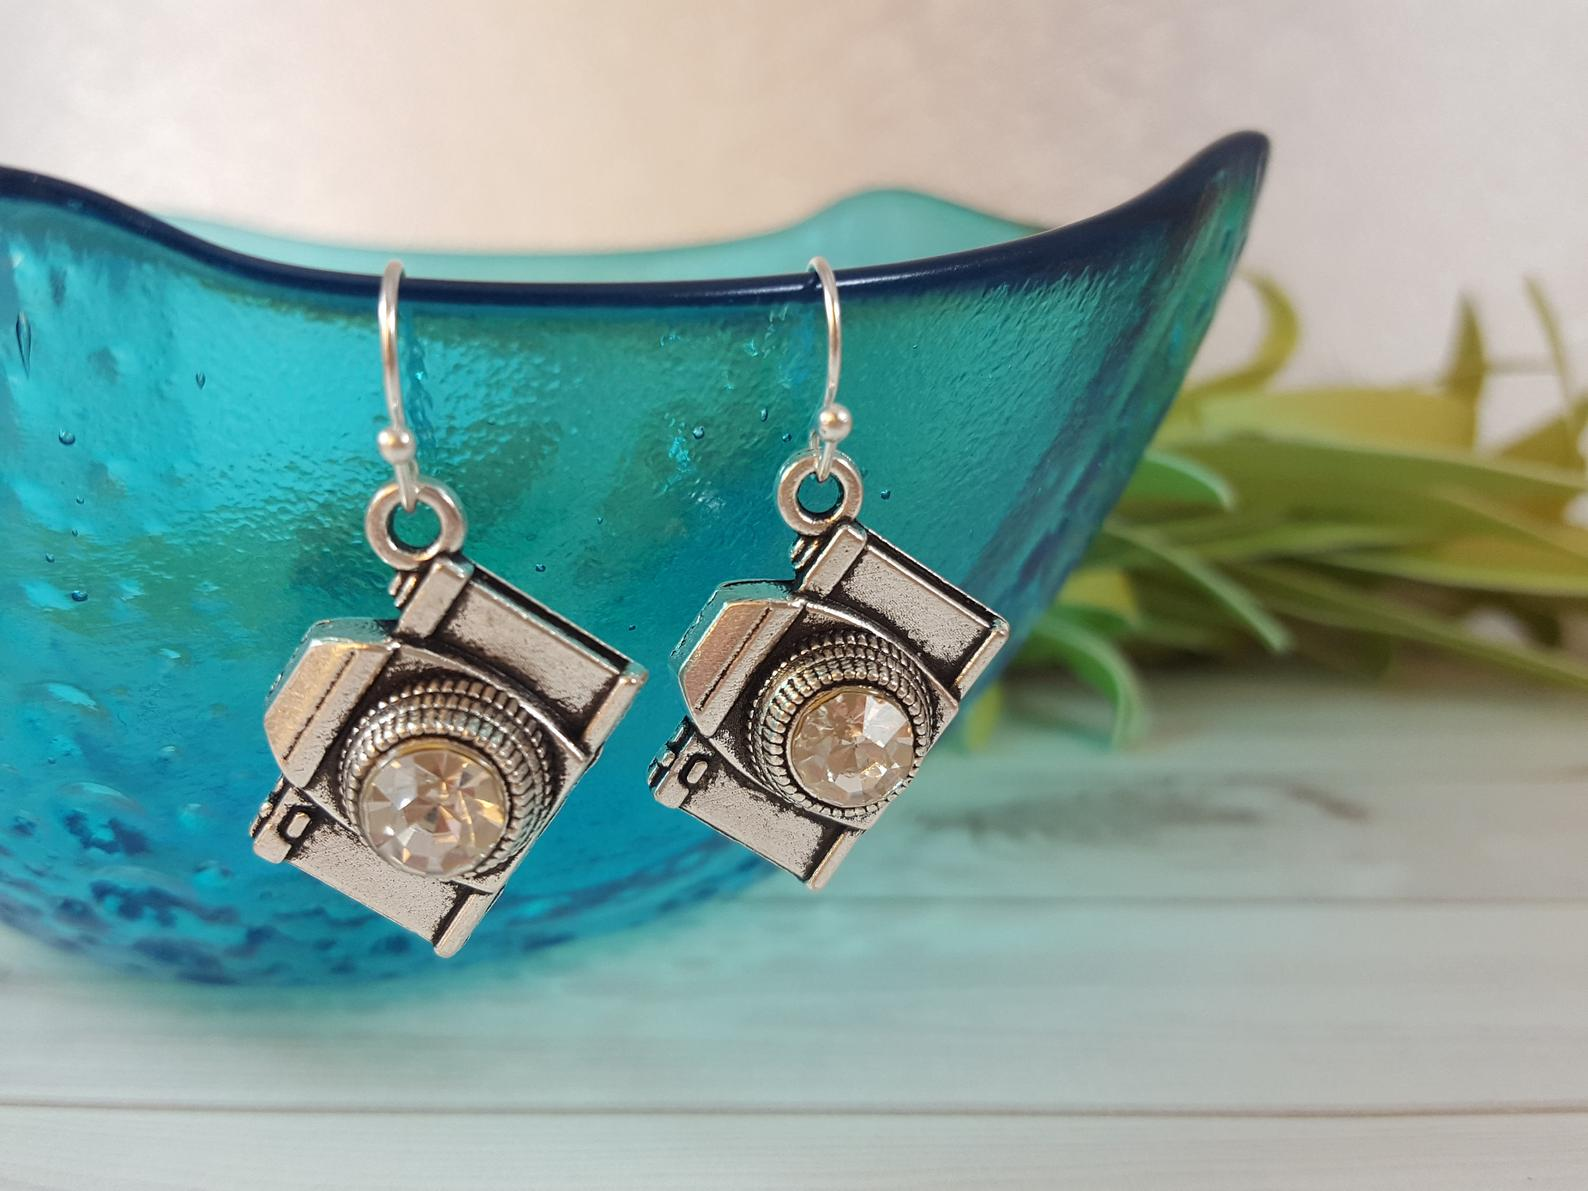 Retro Camera Ear Rings - Unique Gifts for Photographers